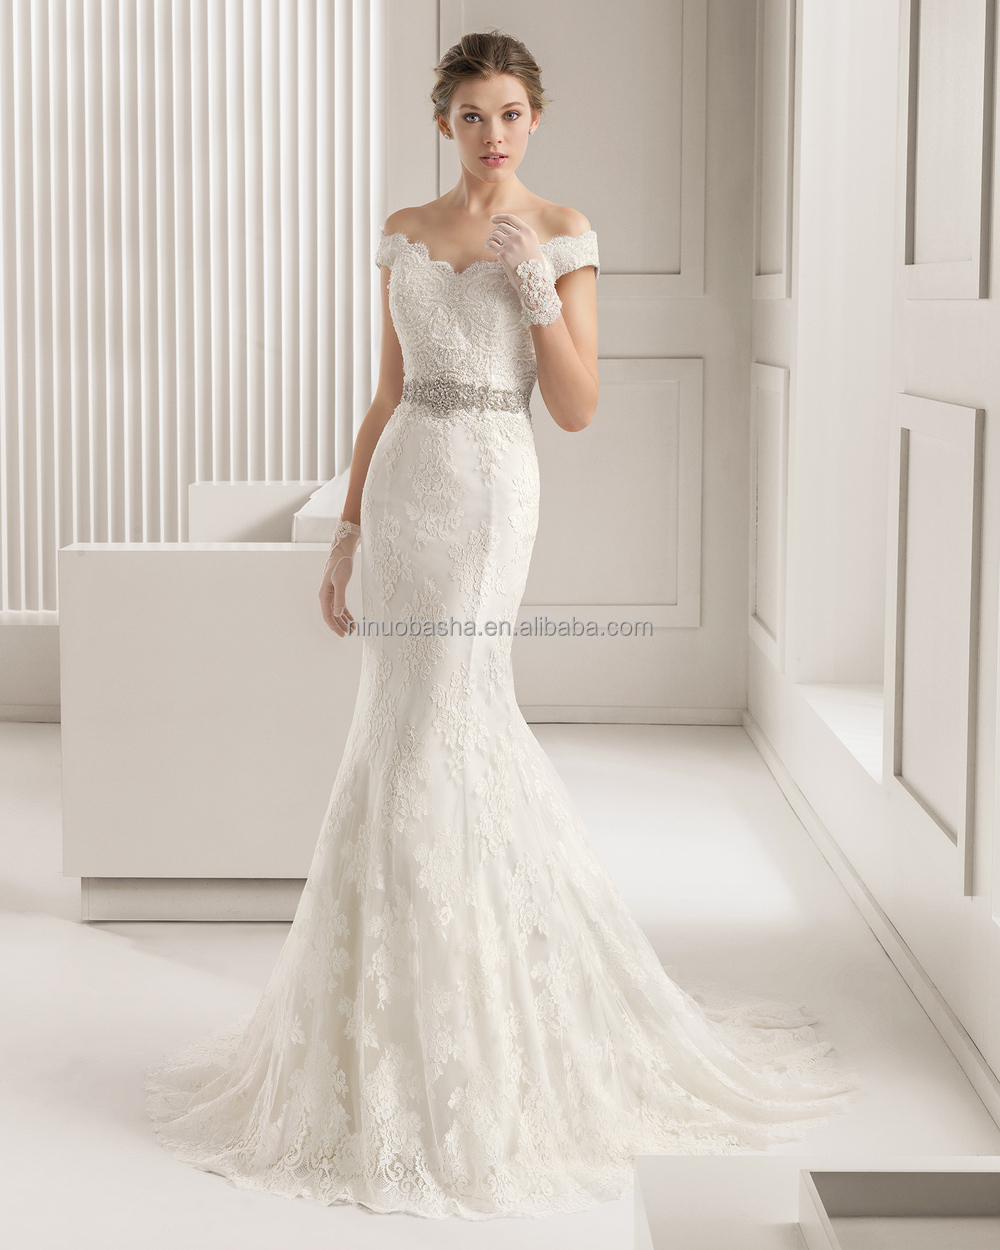 Off Shoulder Cap Sleeve Beaded Sash Long Tail Covered Button Bridal Gown NB1036 1